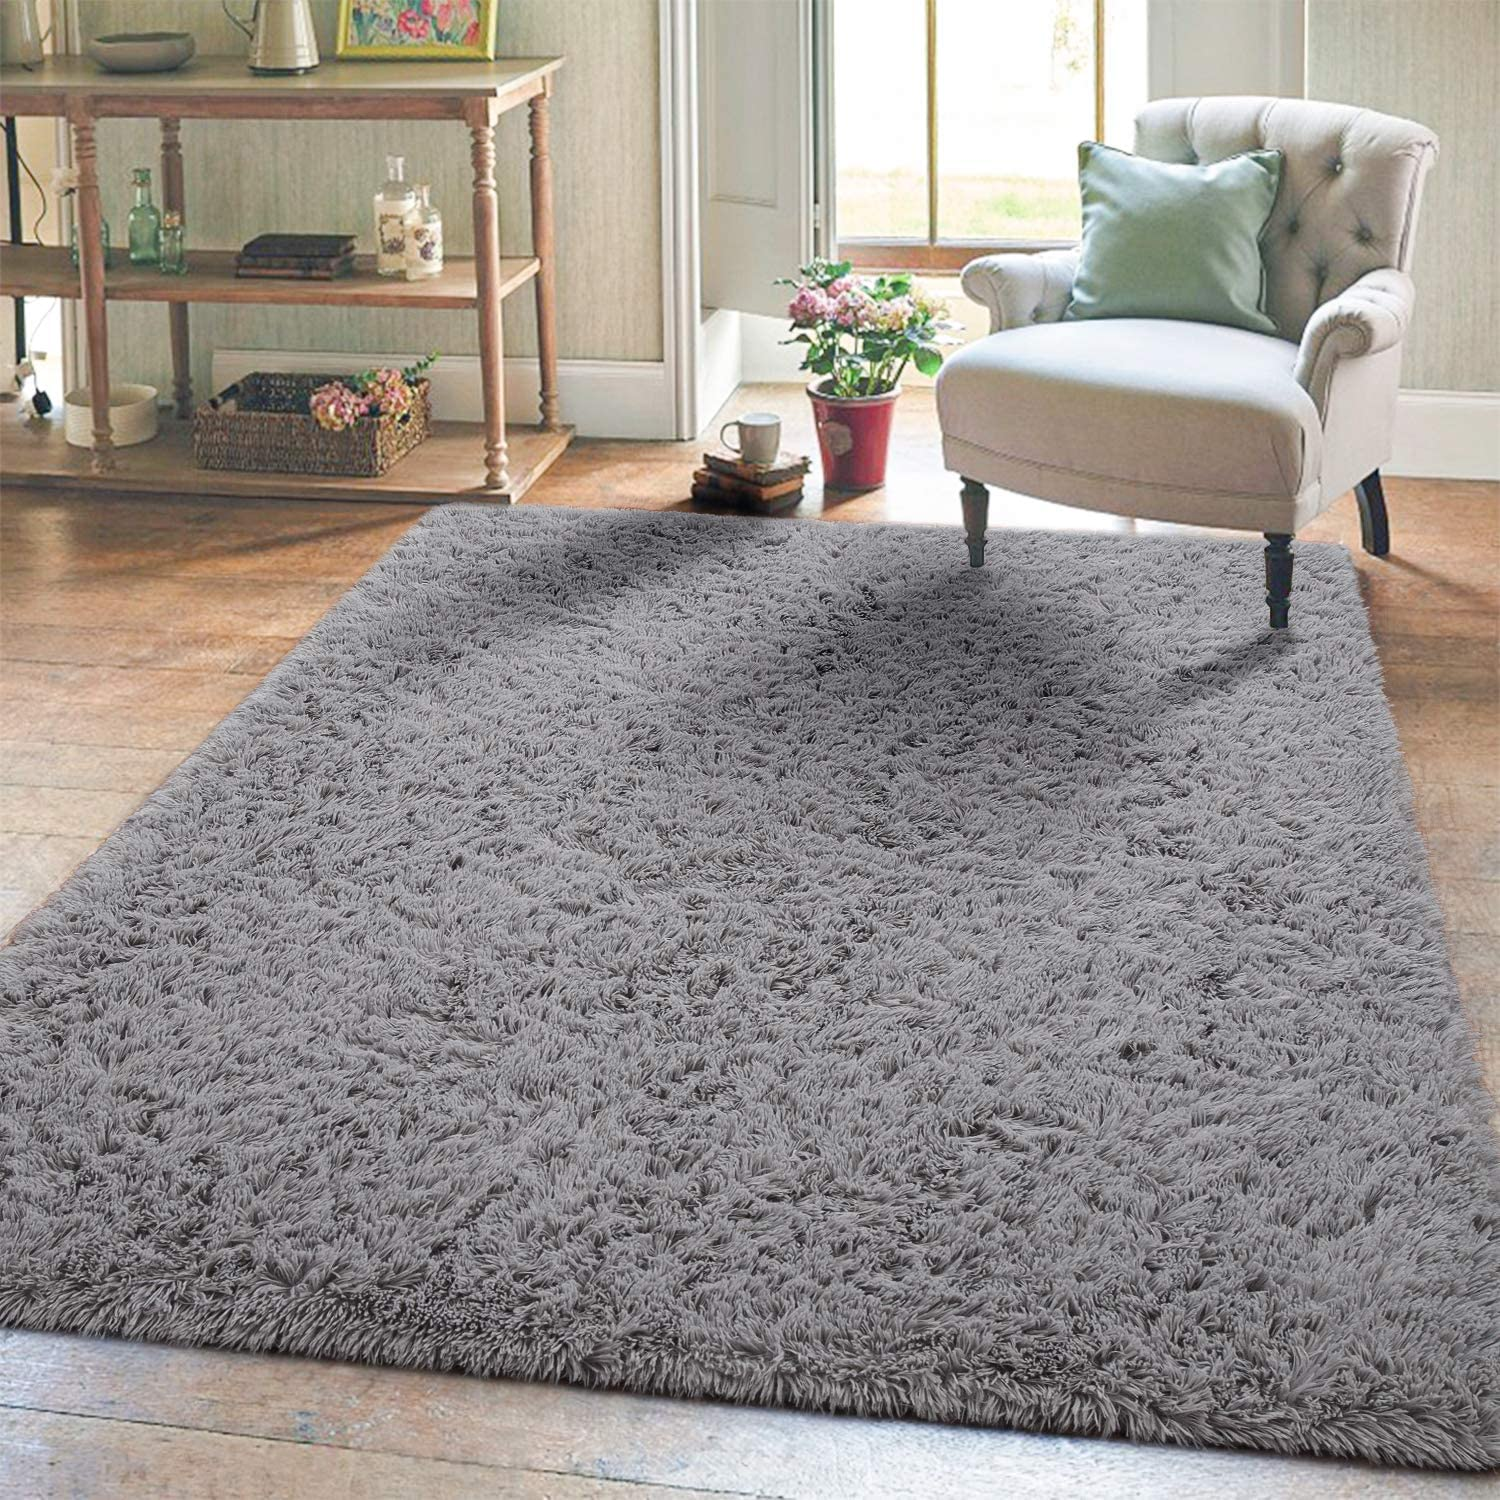 Amazon Com Super Soft Kids Girls Room Nursery Rug 4 X 6 Gray Area Rugs For Boys Bedroom Home Decor Living Room Floor Carpets Fluffy Fur Mat By Varycarry Kitchen Dining